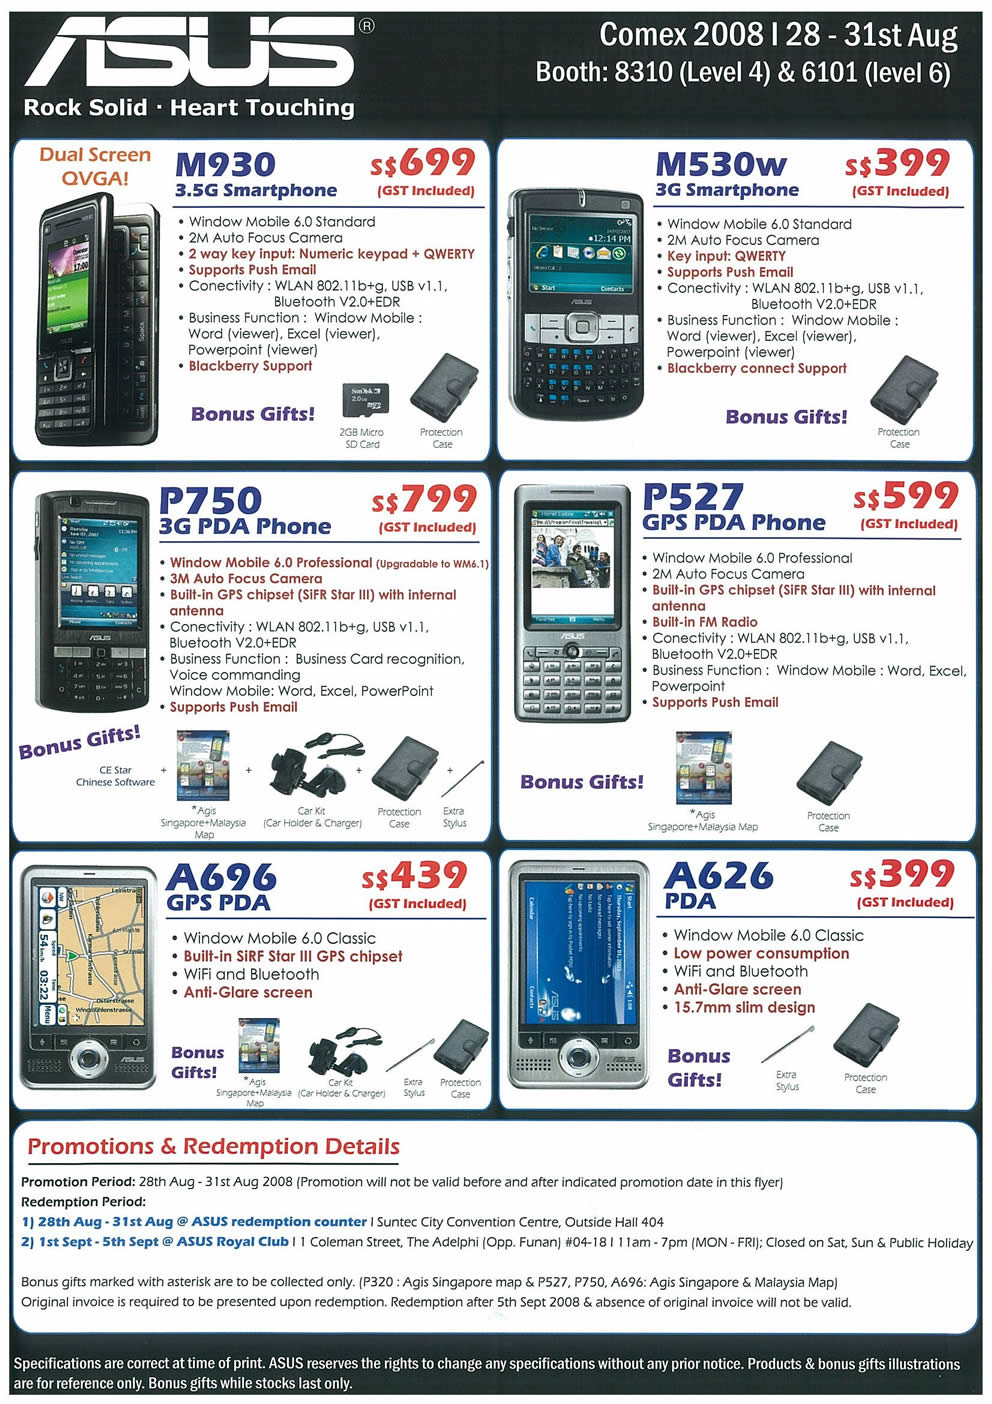 Comex 2008 price list image brochure of ASUS PDA Phones Page 2